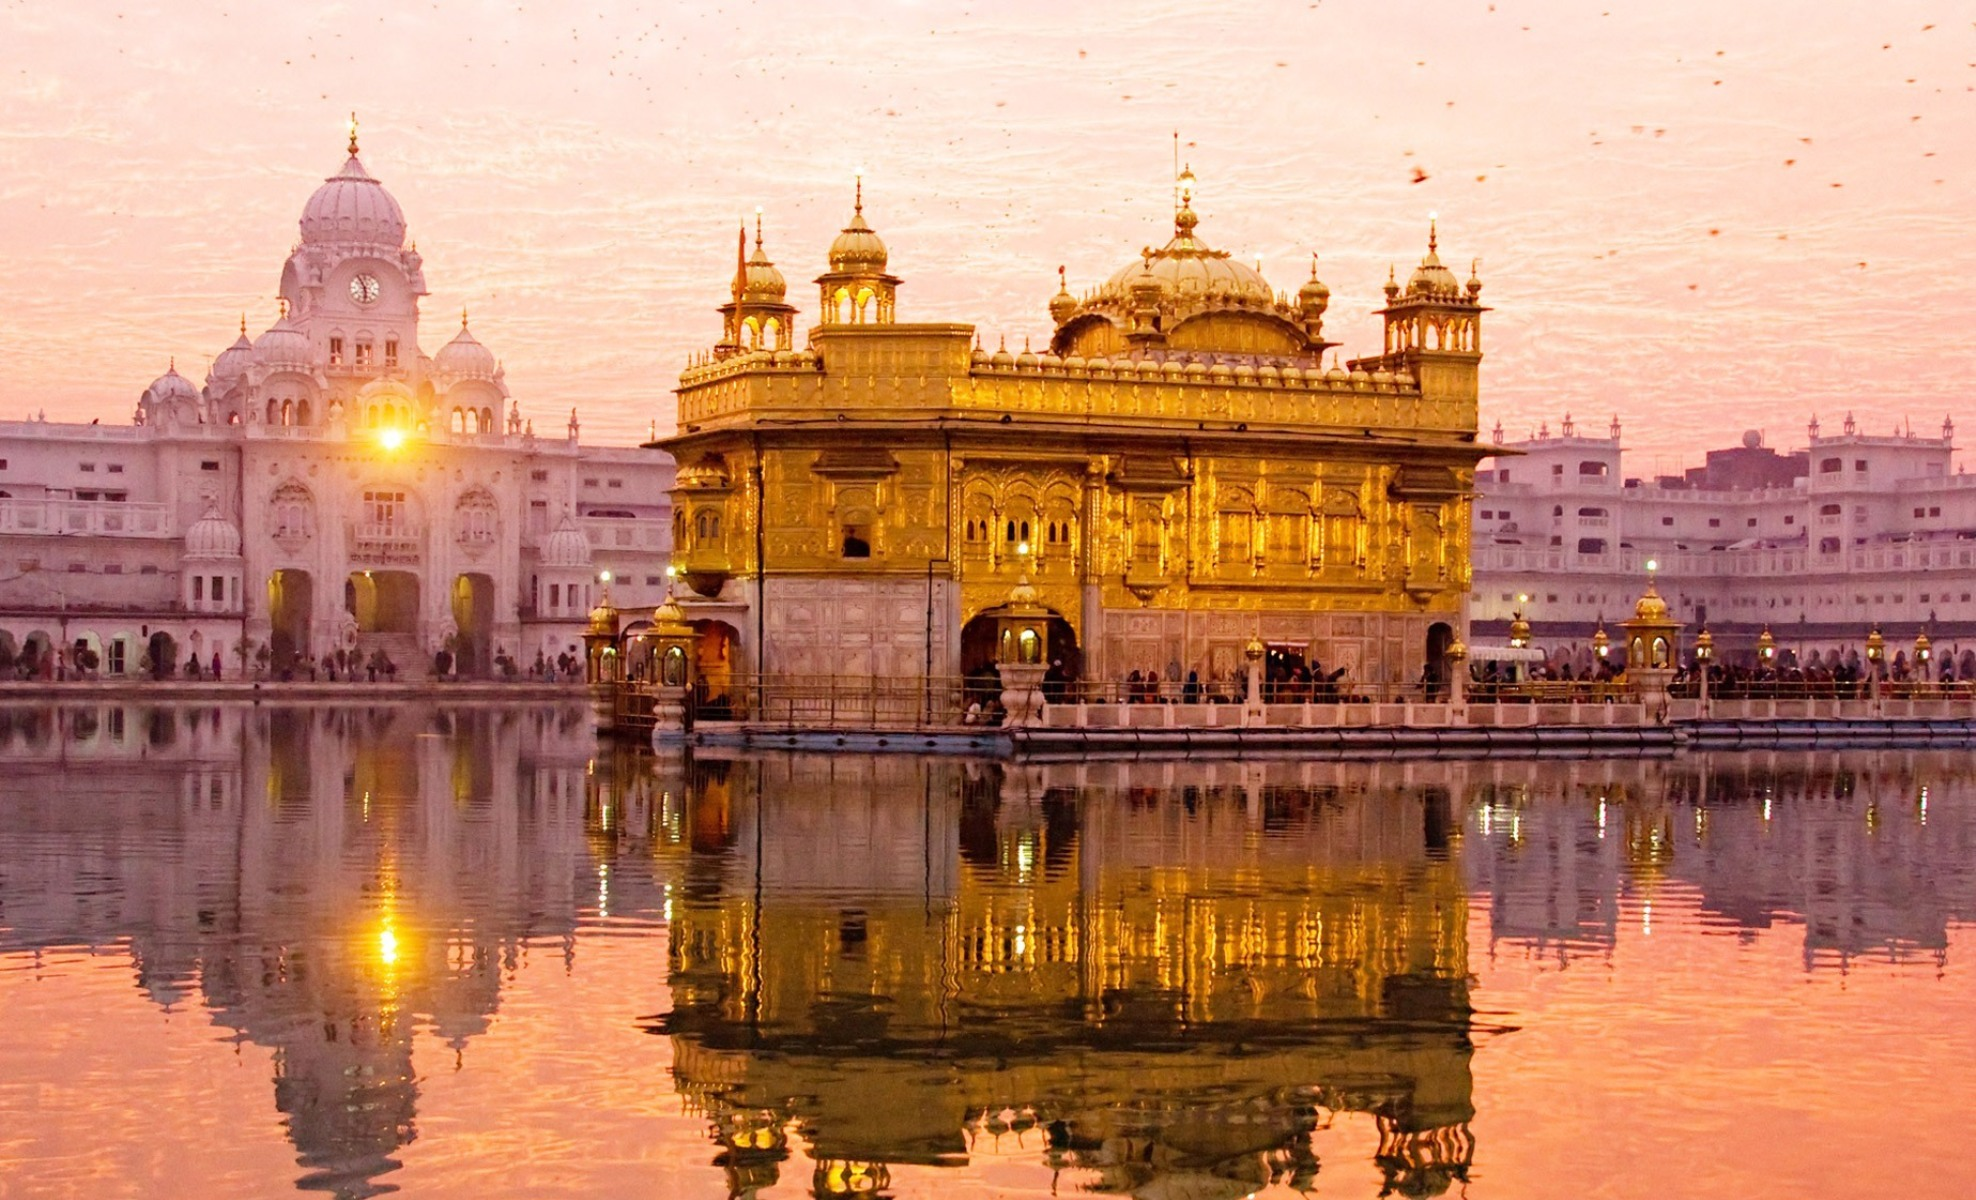 hamandir sahib the golden temple,amritsar,punjab hd wallpaper